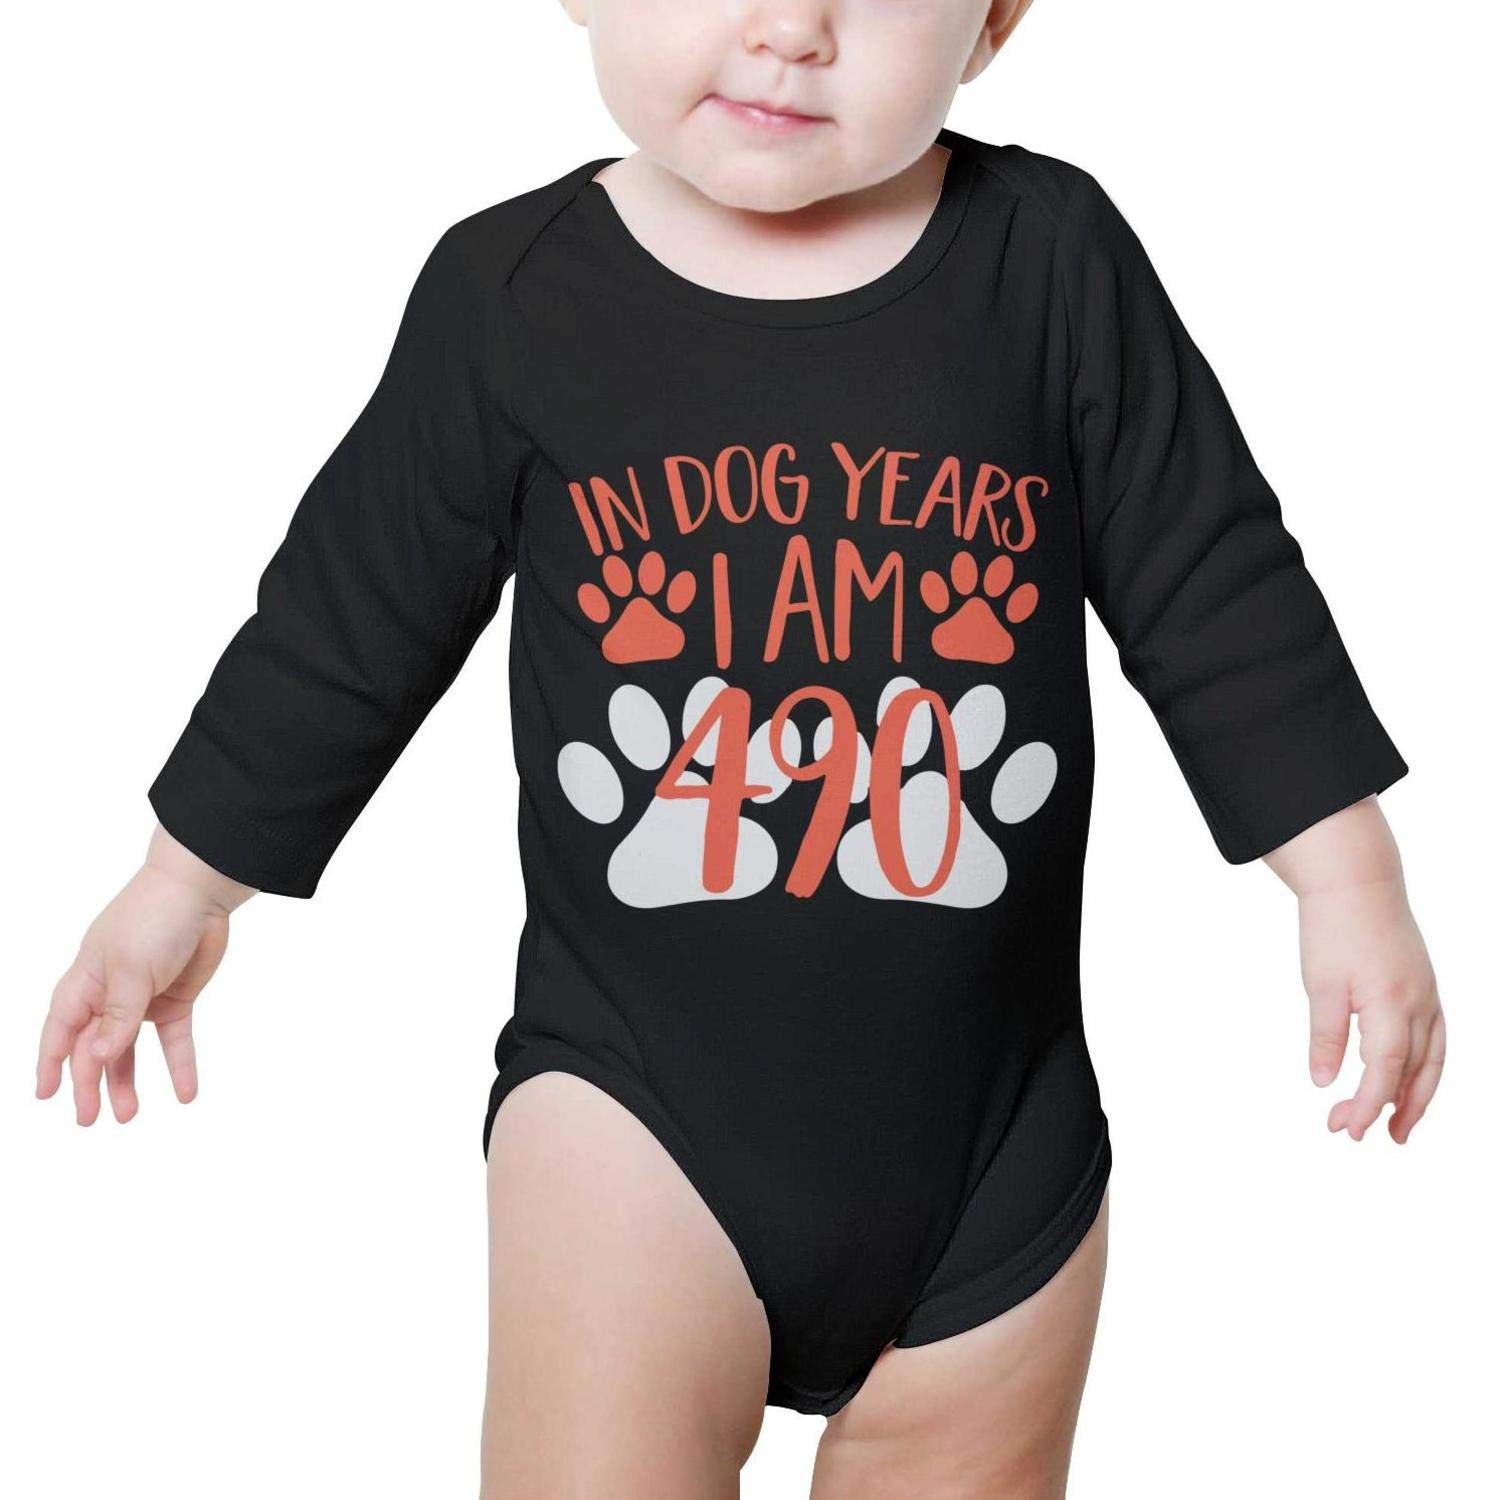 ChenHuan SHIRT ベビーボーイズ 12 Months In Dog Years B07GDJML66